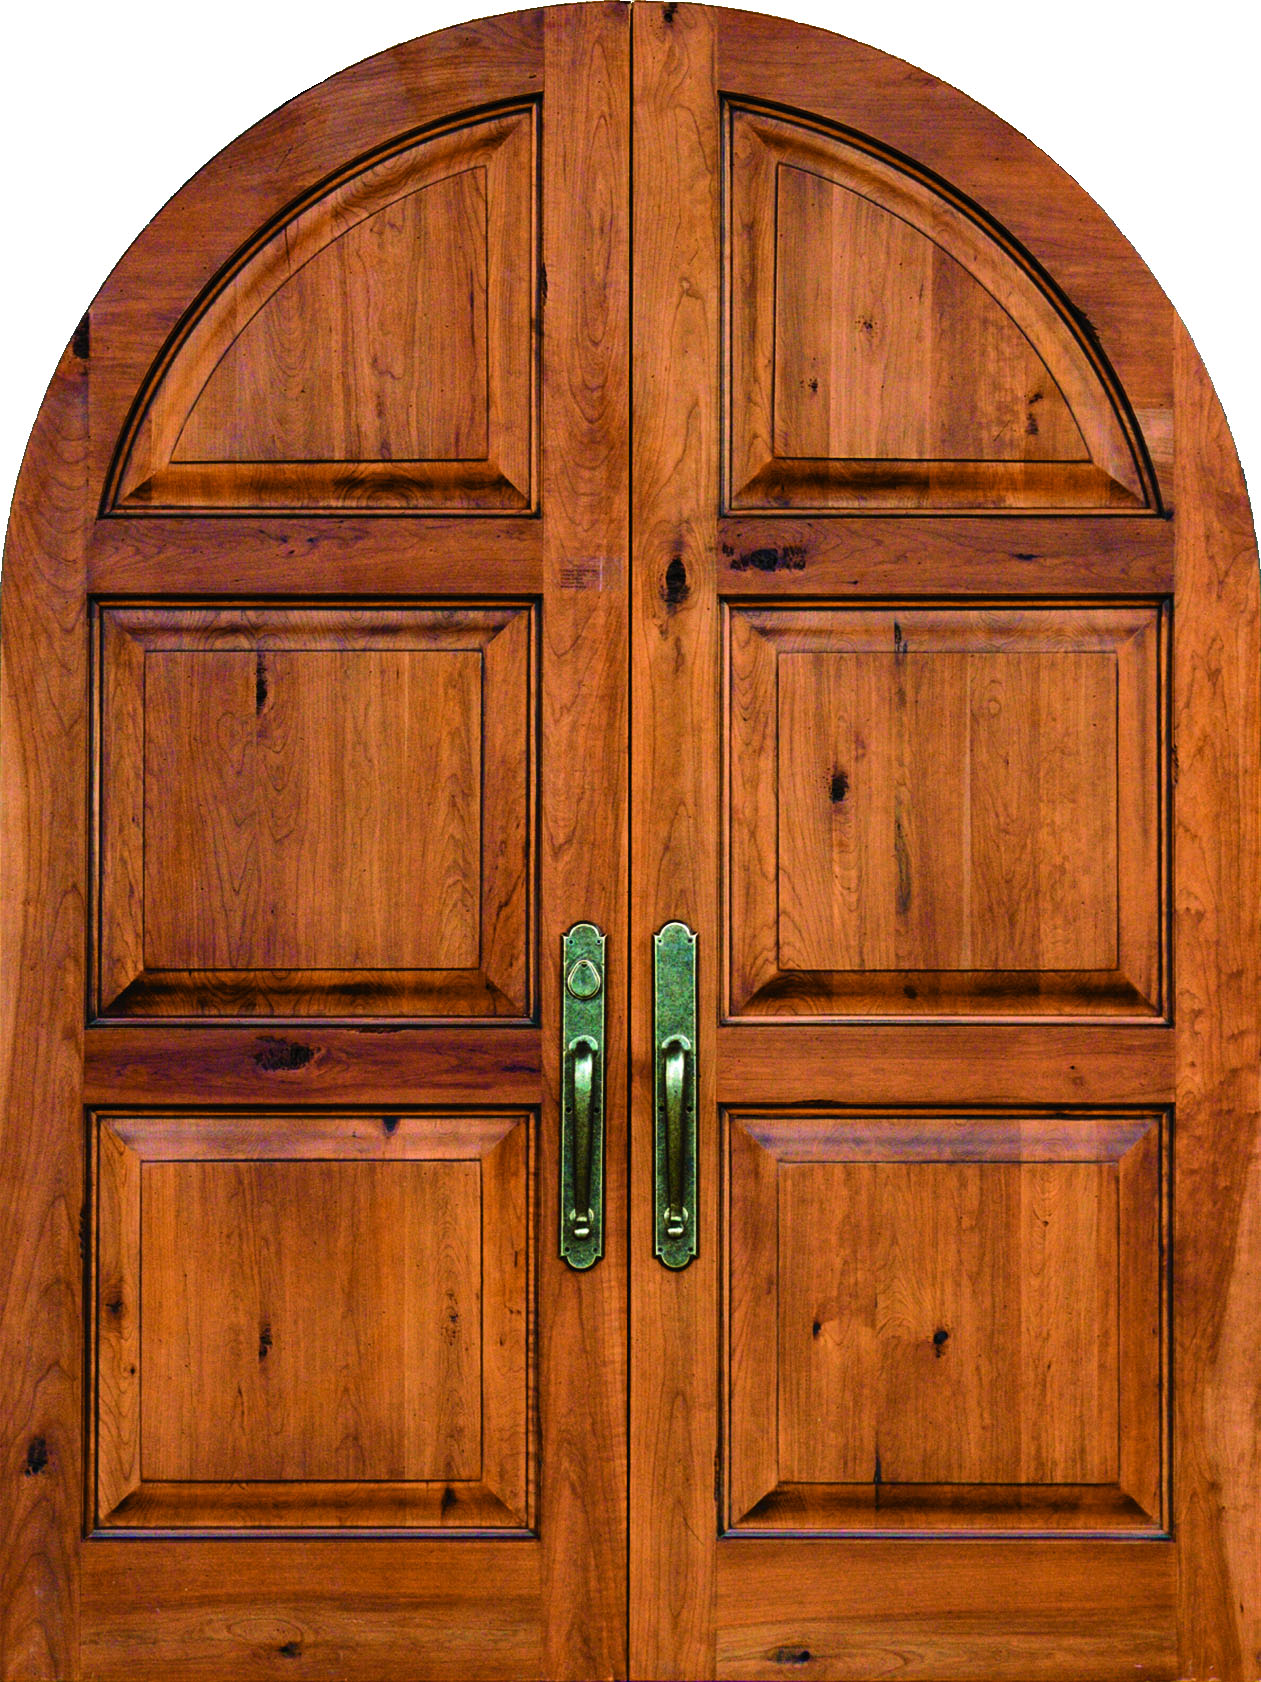 1682 #B05215 Arch Top Doors And Arched Door Frames Sun Mountain Door image Arched Wood Entry Doors 40831261